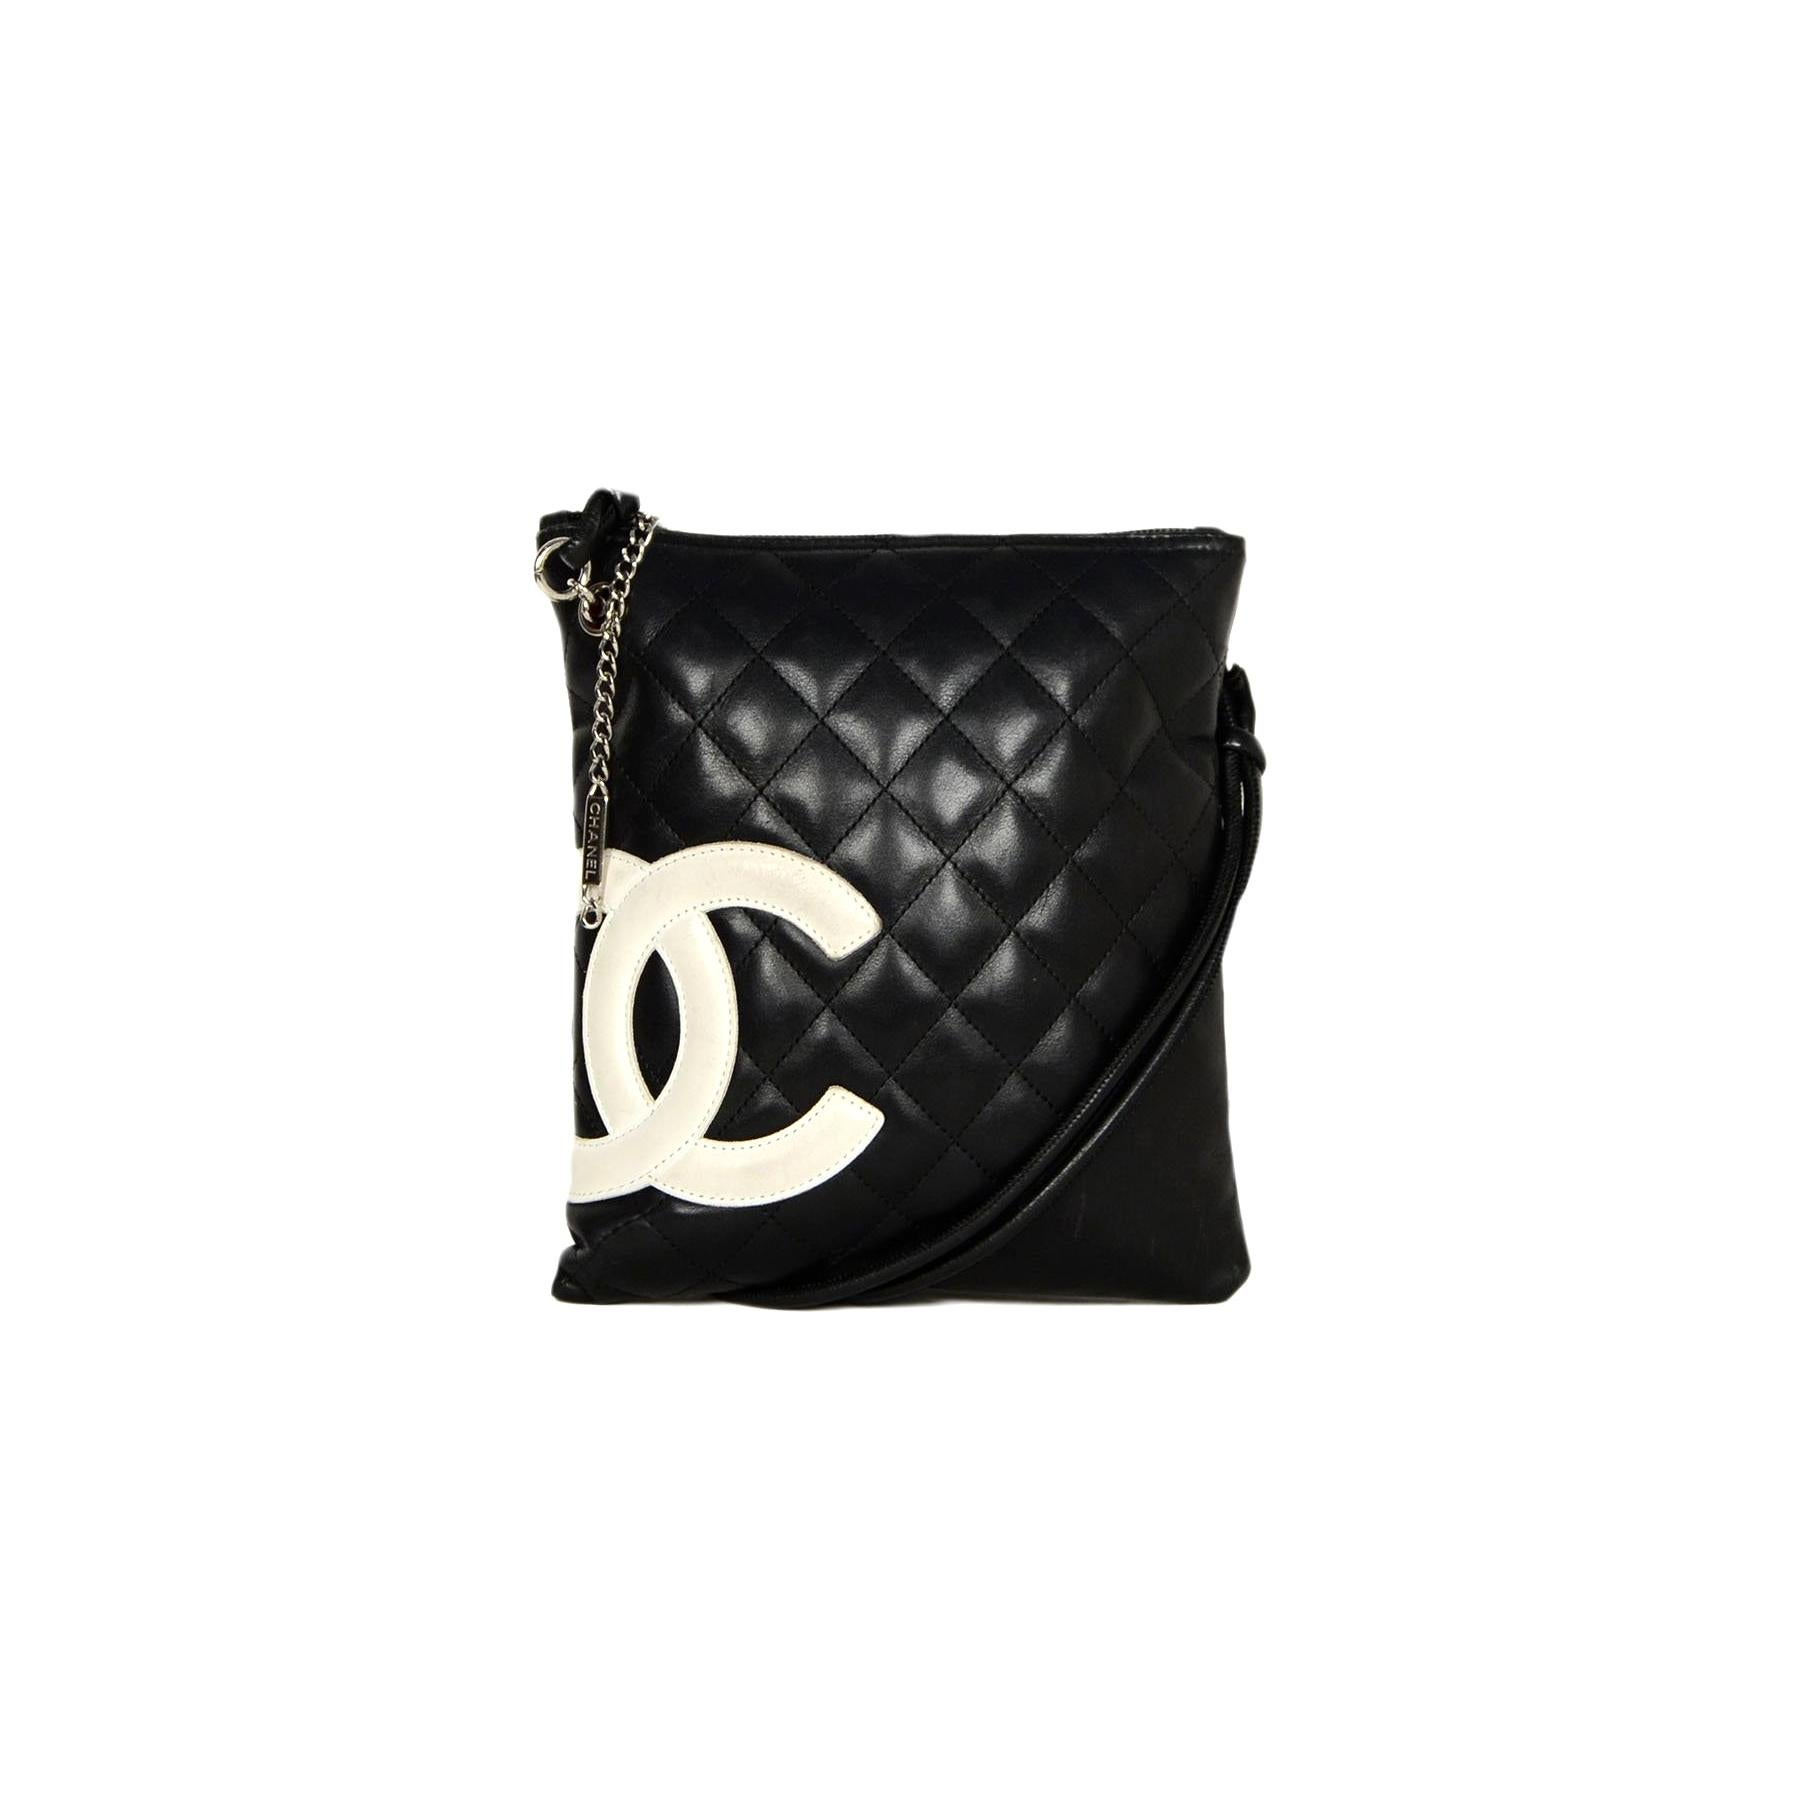 fb32656fec01bb Black Crossbody Bags and Messenger Bags - 1,308 For Sale at 1stdibs - Page 5